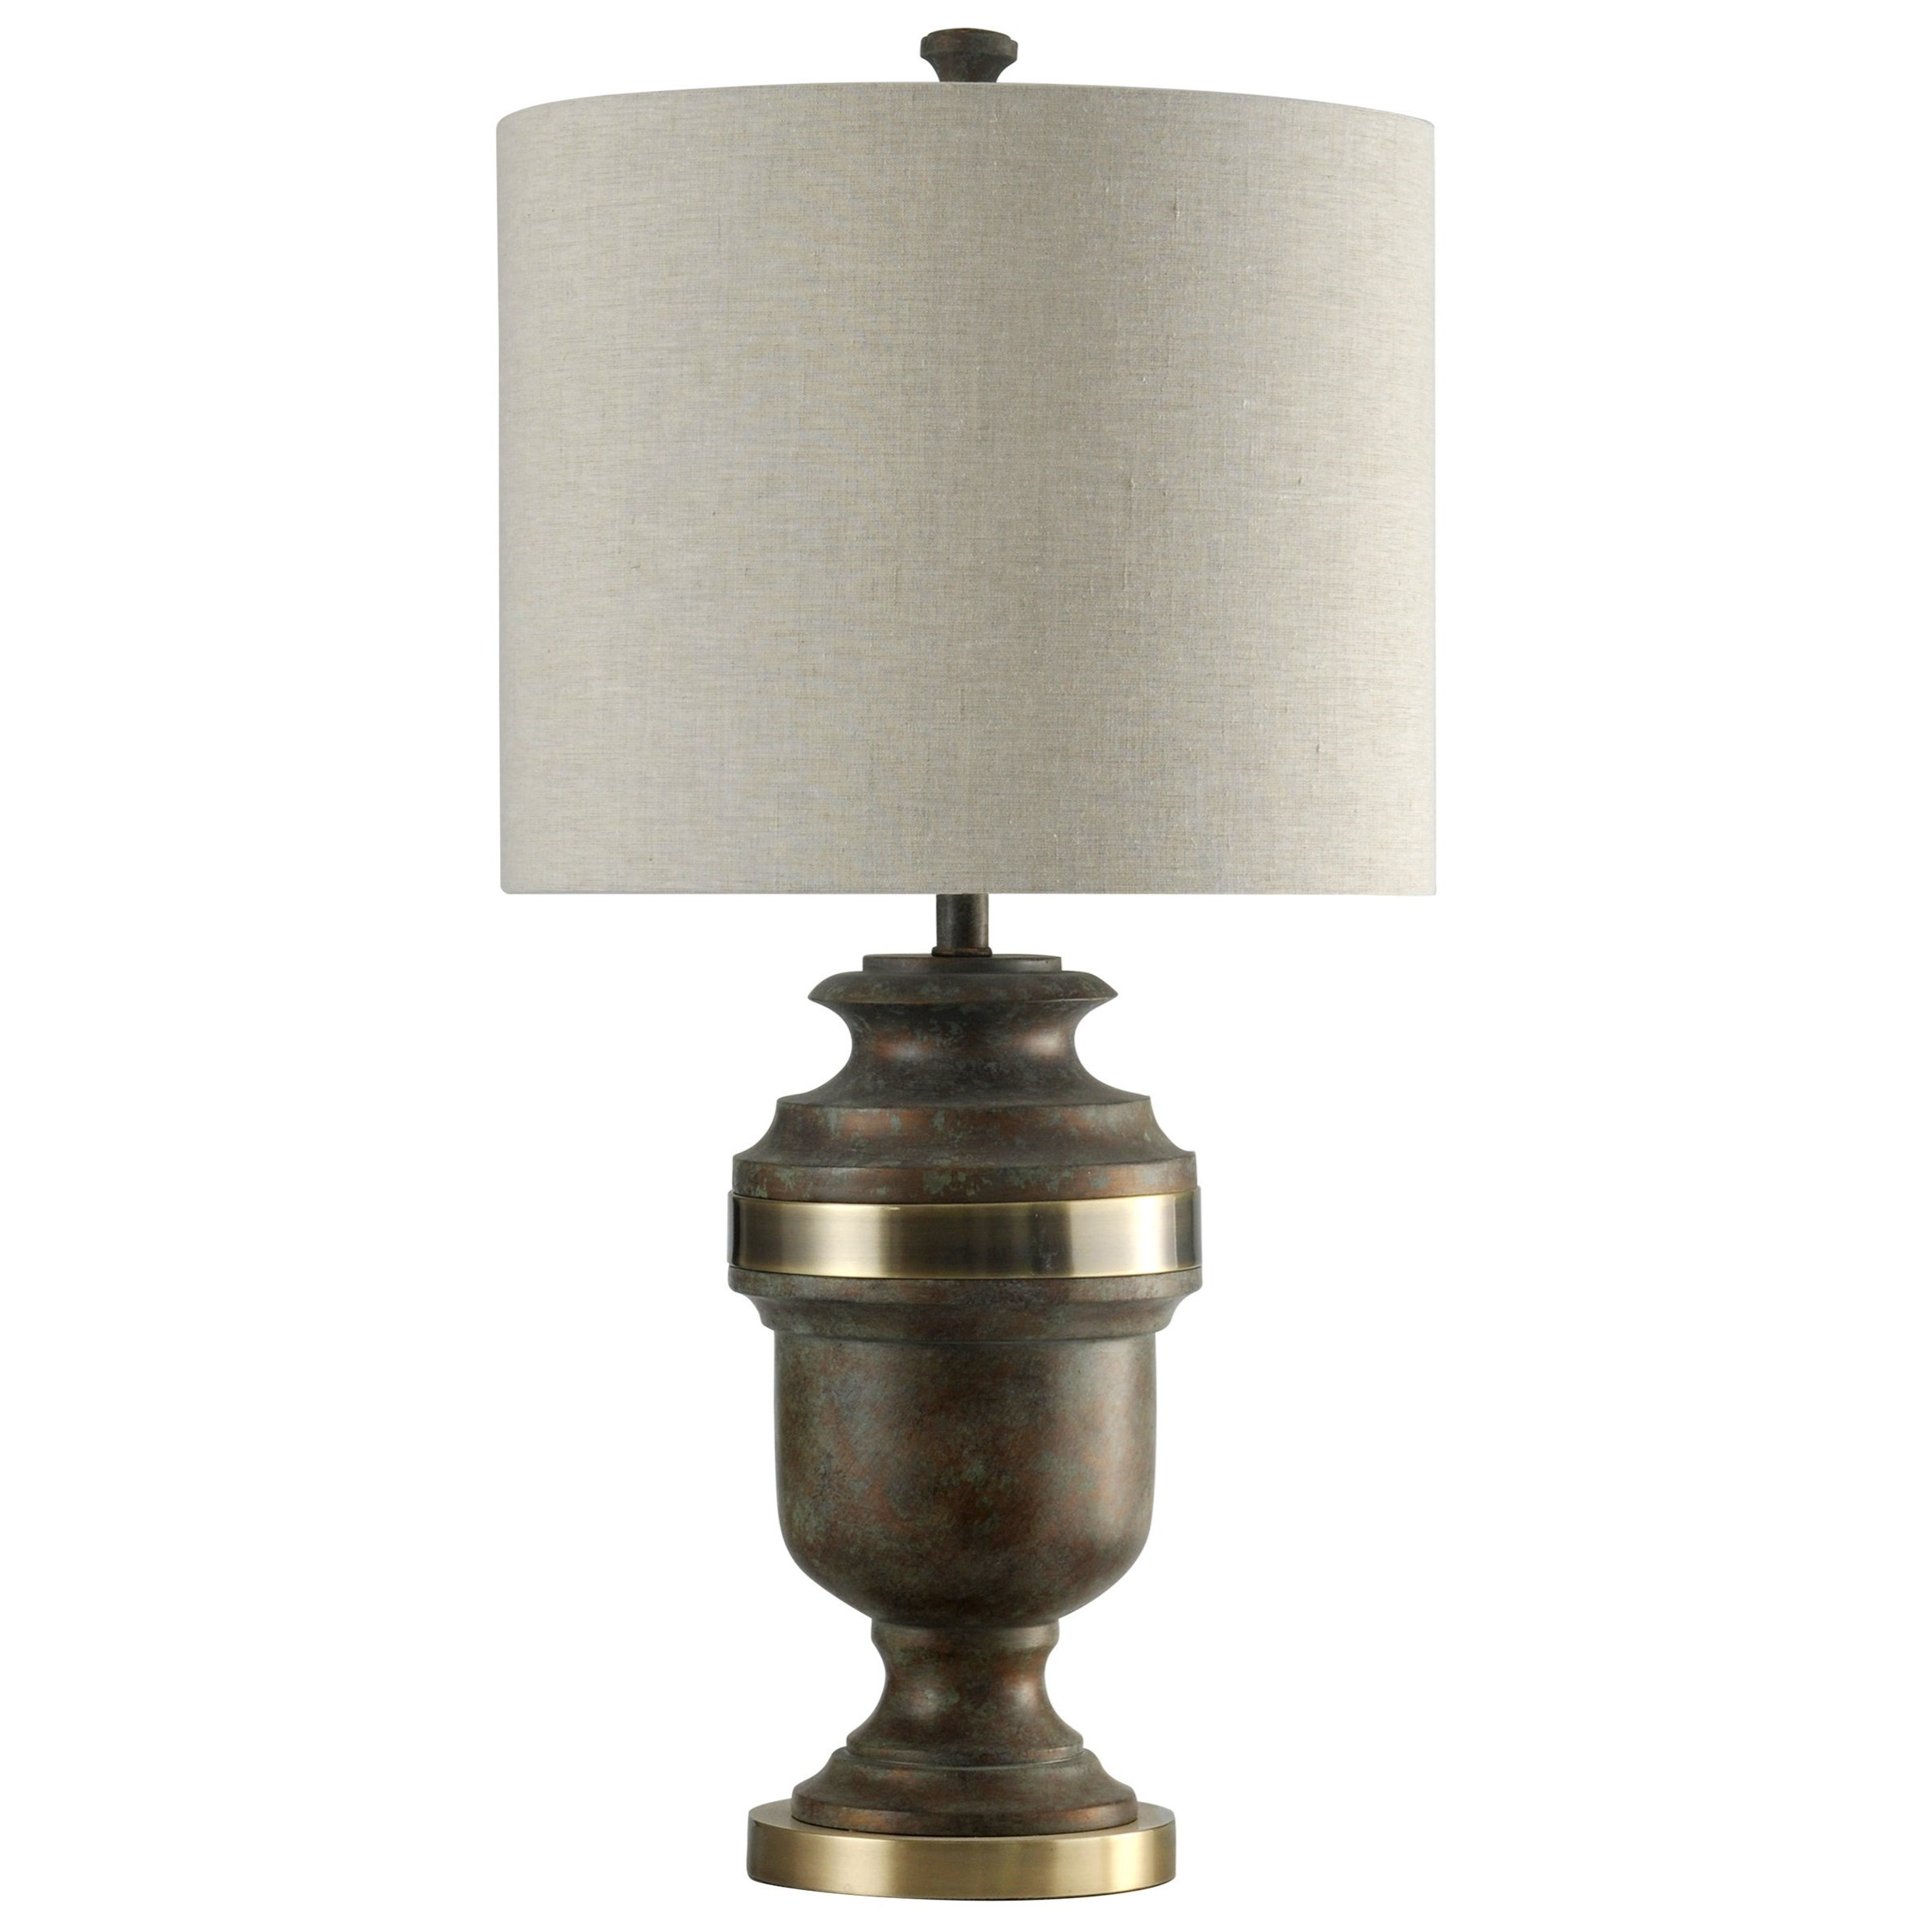 Lamps Resin And Steel Table Lamp by StyleCraft at Alison Craig Home Furnishings